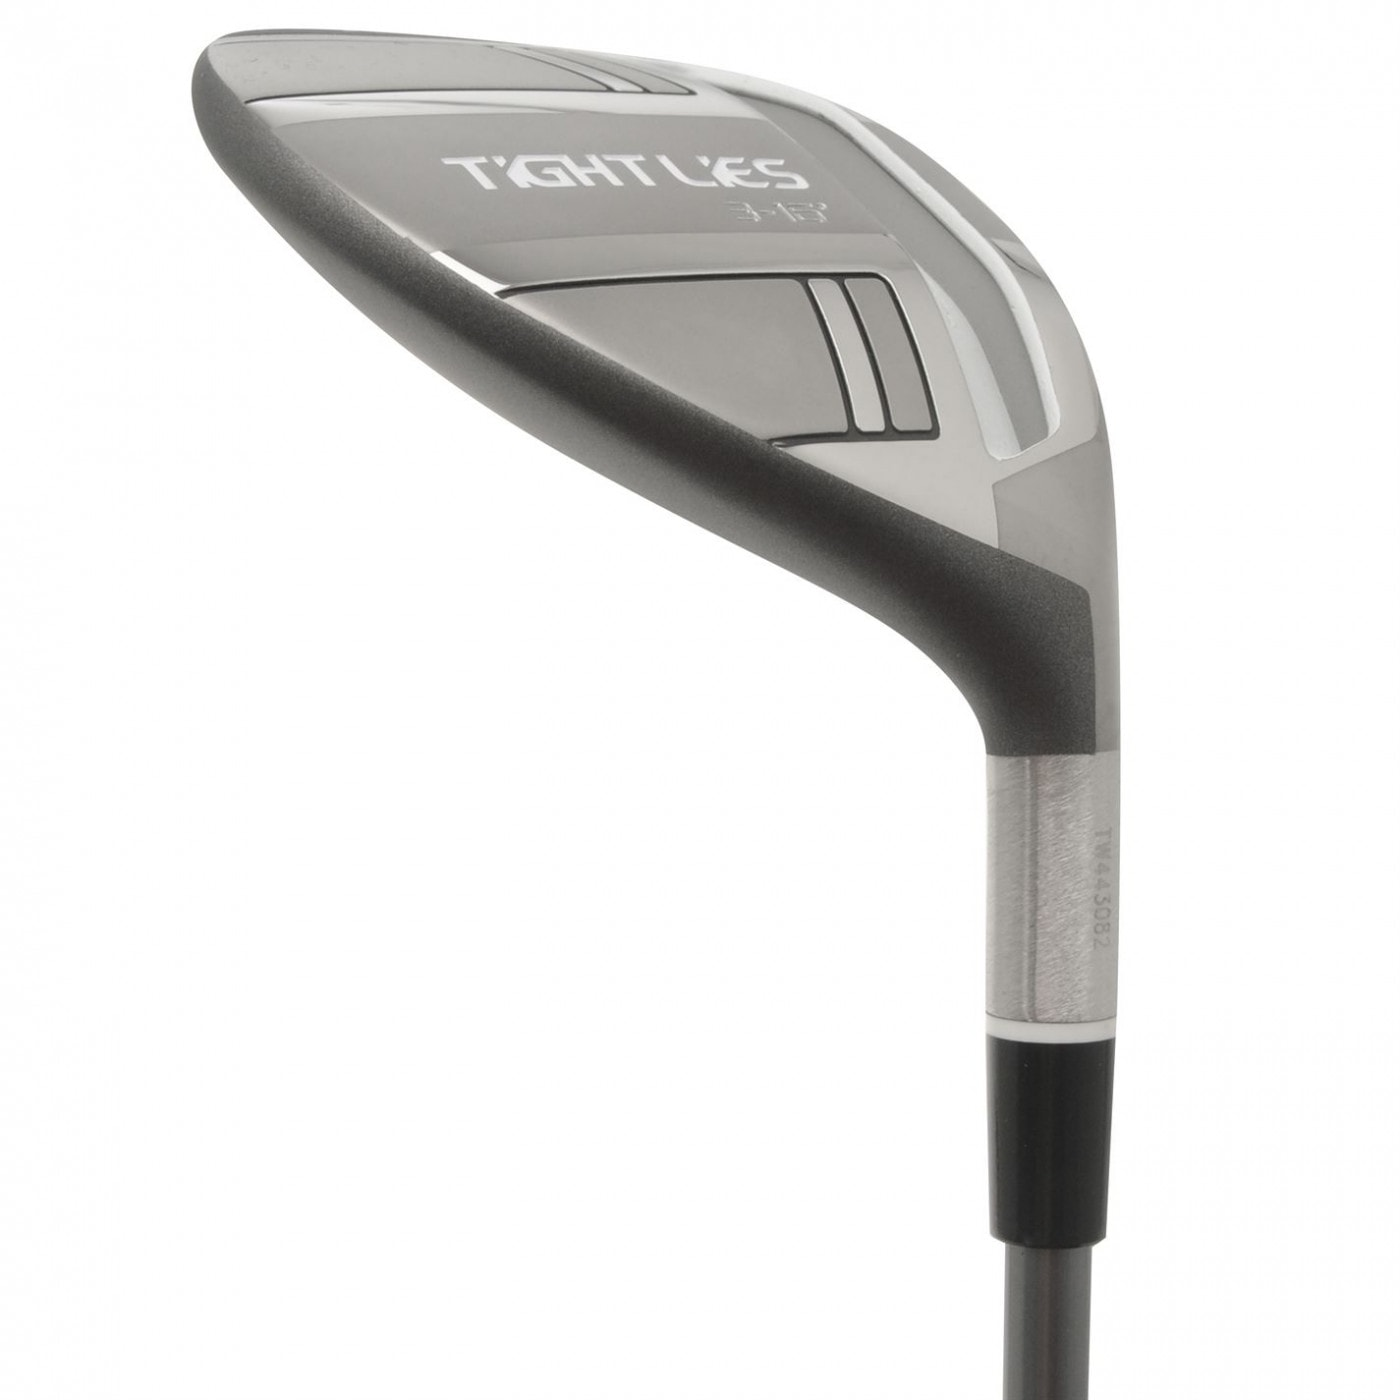 Adams Tight Lies Ladies Fairway Wood